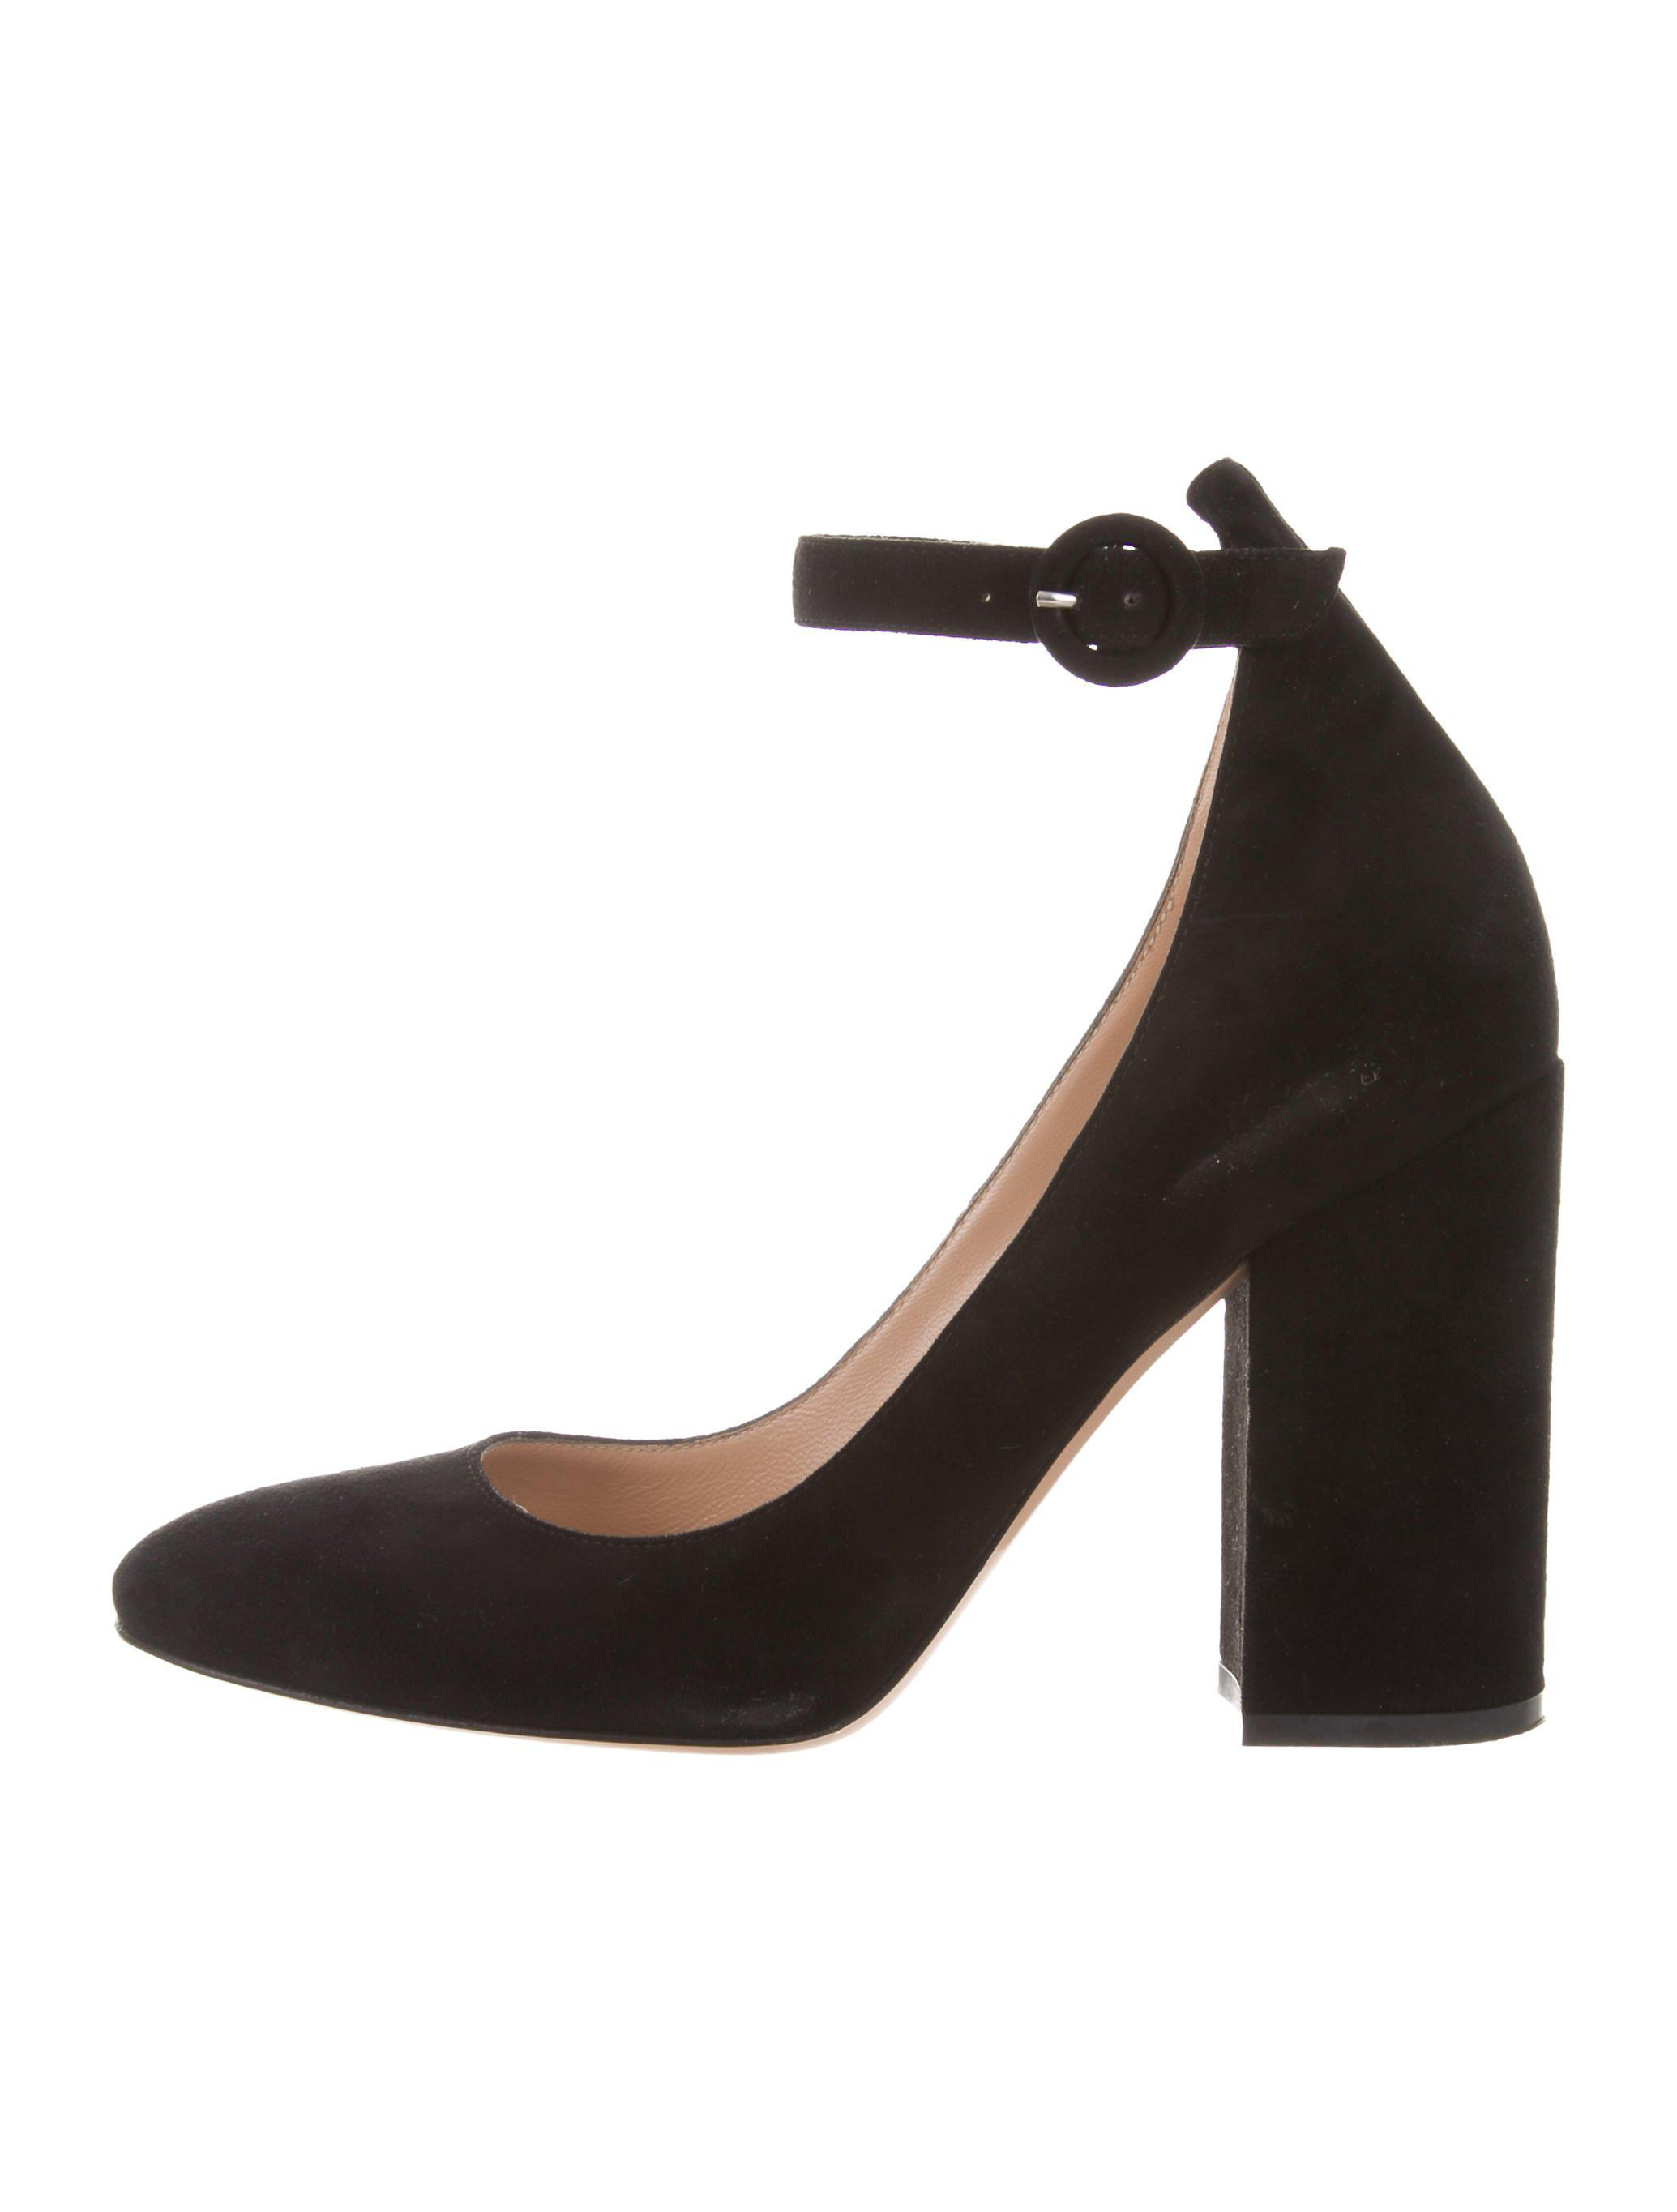 6d4484a19ae1 Lyst - Gianvito Rossi Suede Ankle-strap Pumps in Black